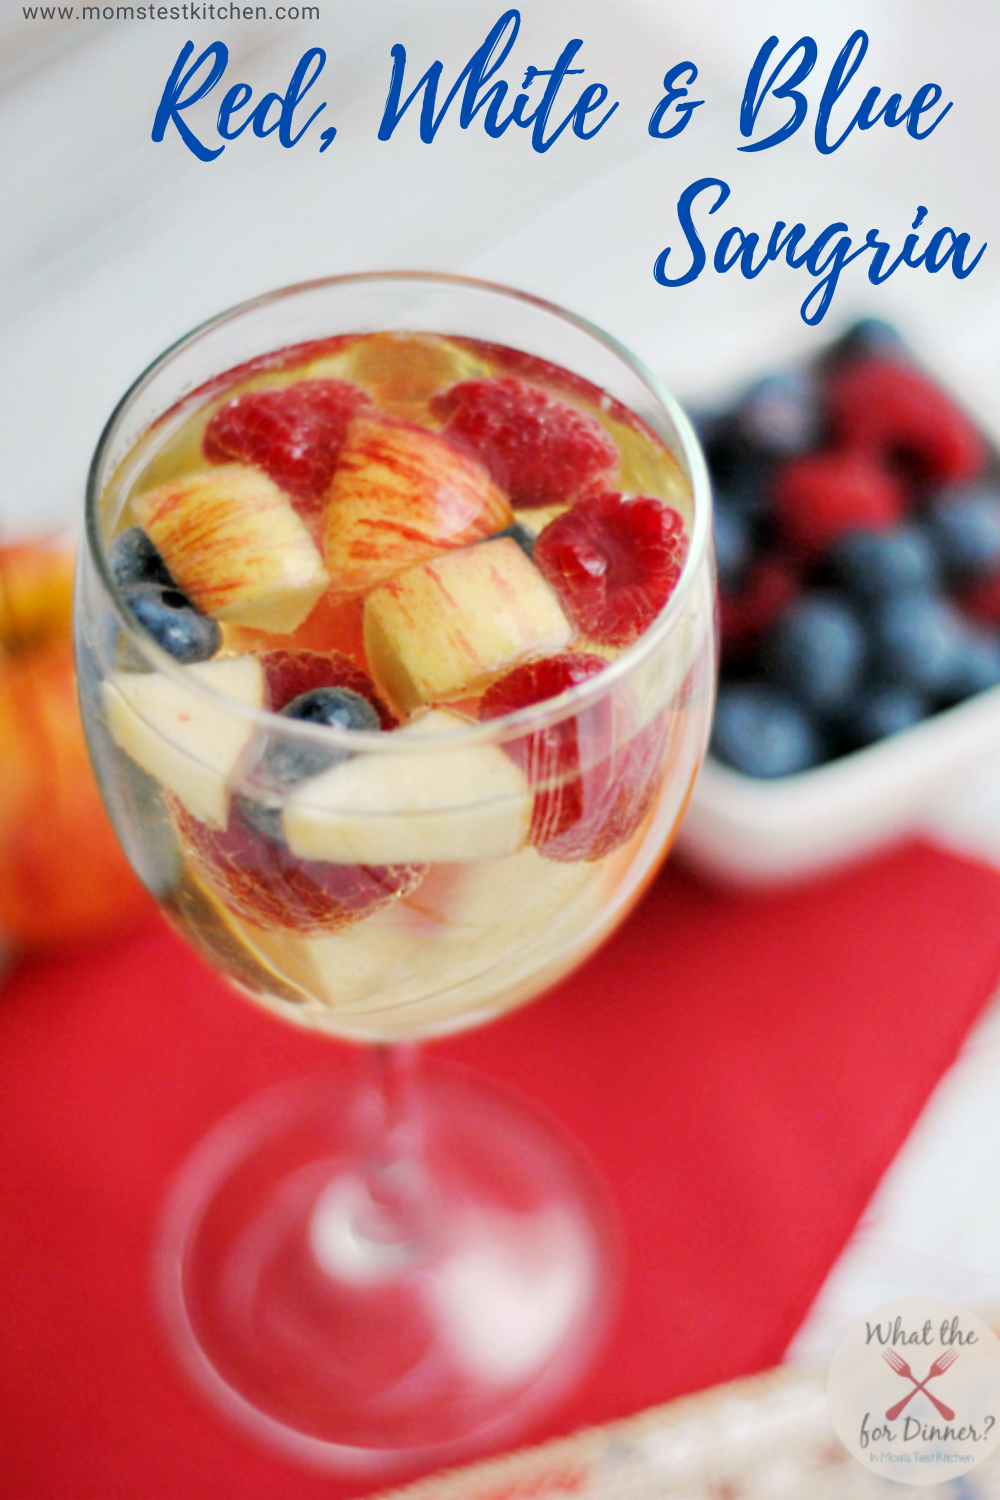 Simple to make and requiring only two ingredients, this Red, White & Blue Sangria is a perfect addition to your 4th of July menu!